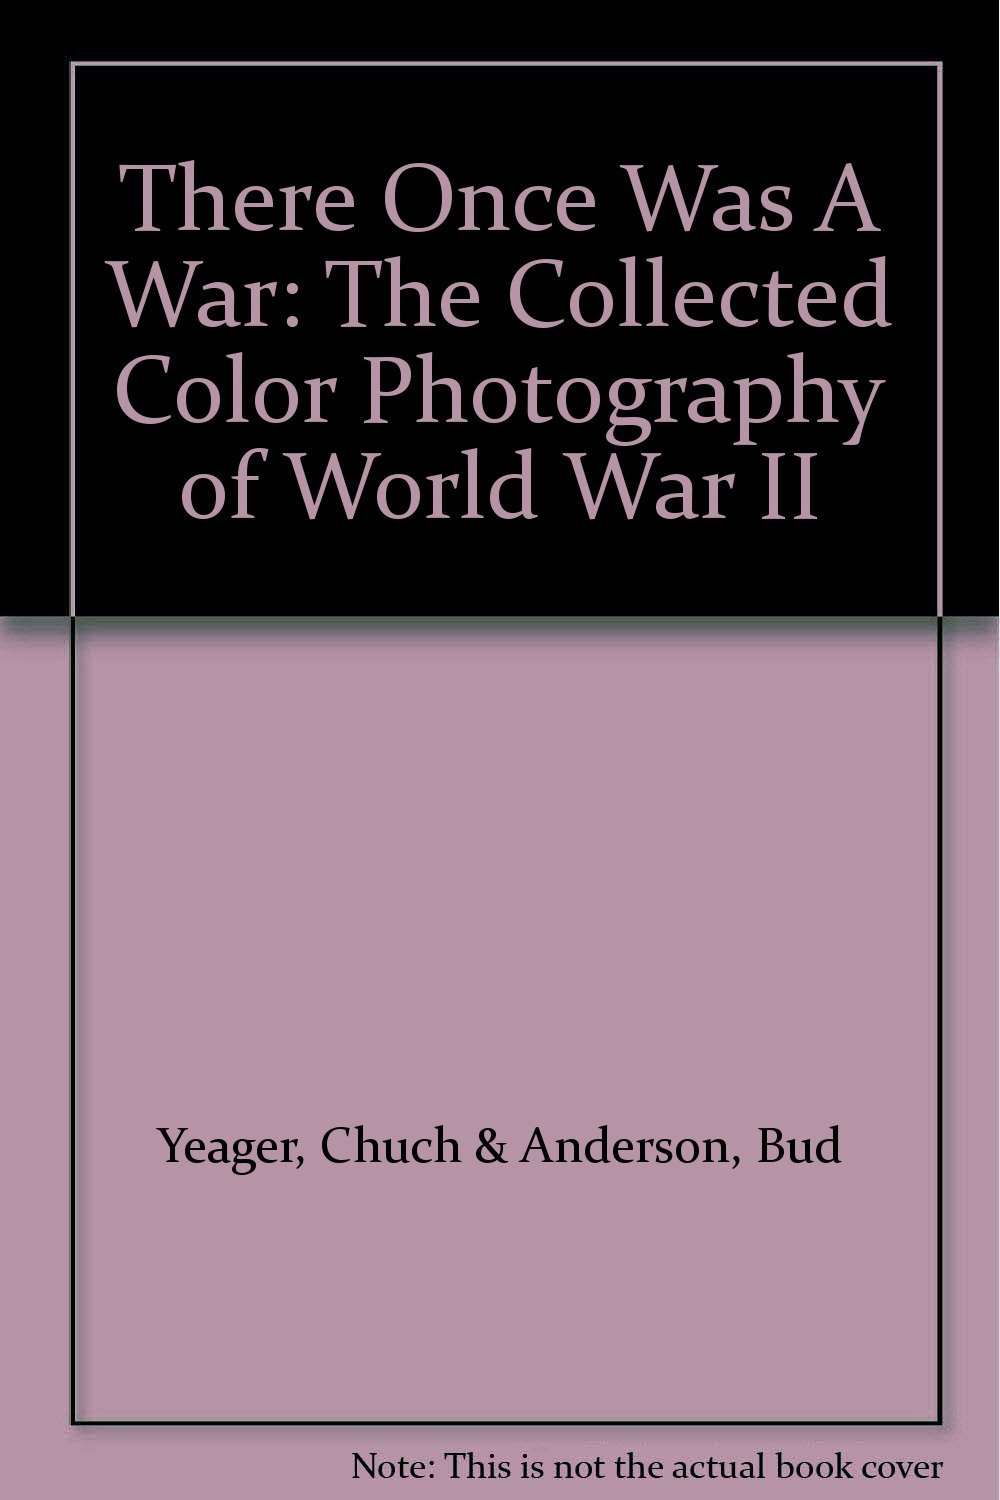 There Once Was A War: The Collected Color Photography of World War II